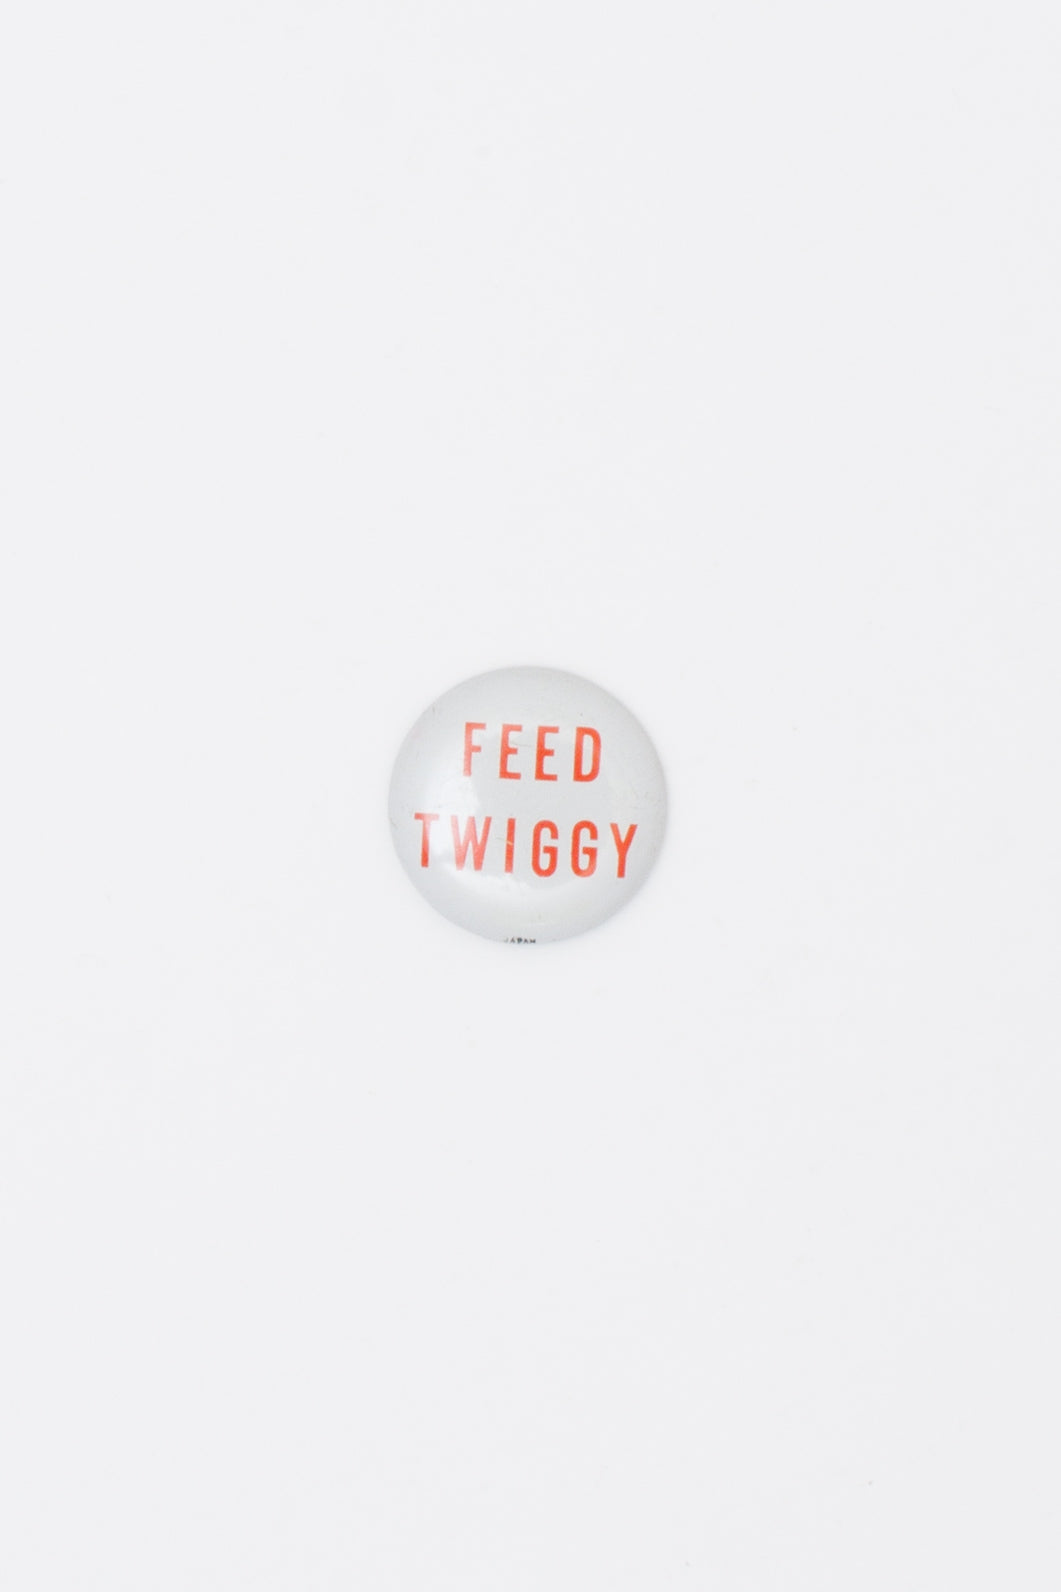 FEED TWIGGY